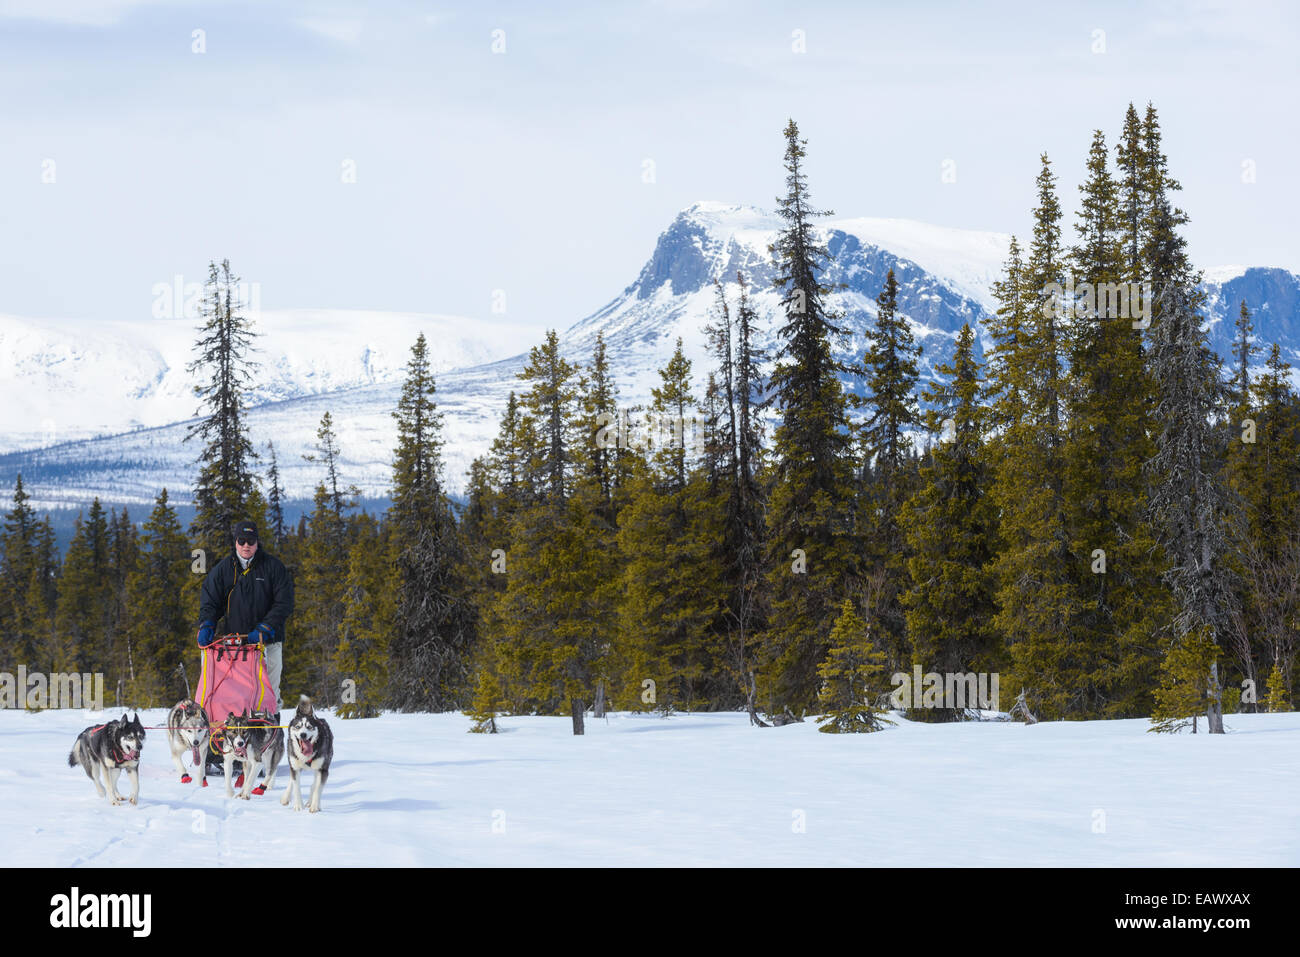 Musher and his dog team travel across a snowy landscape - Stock Image